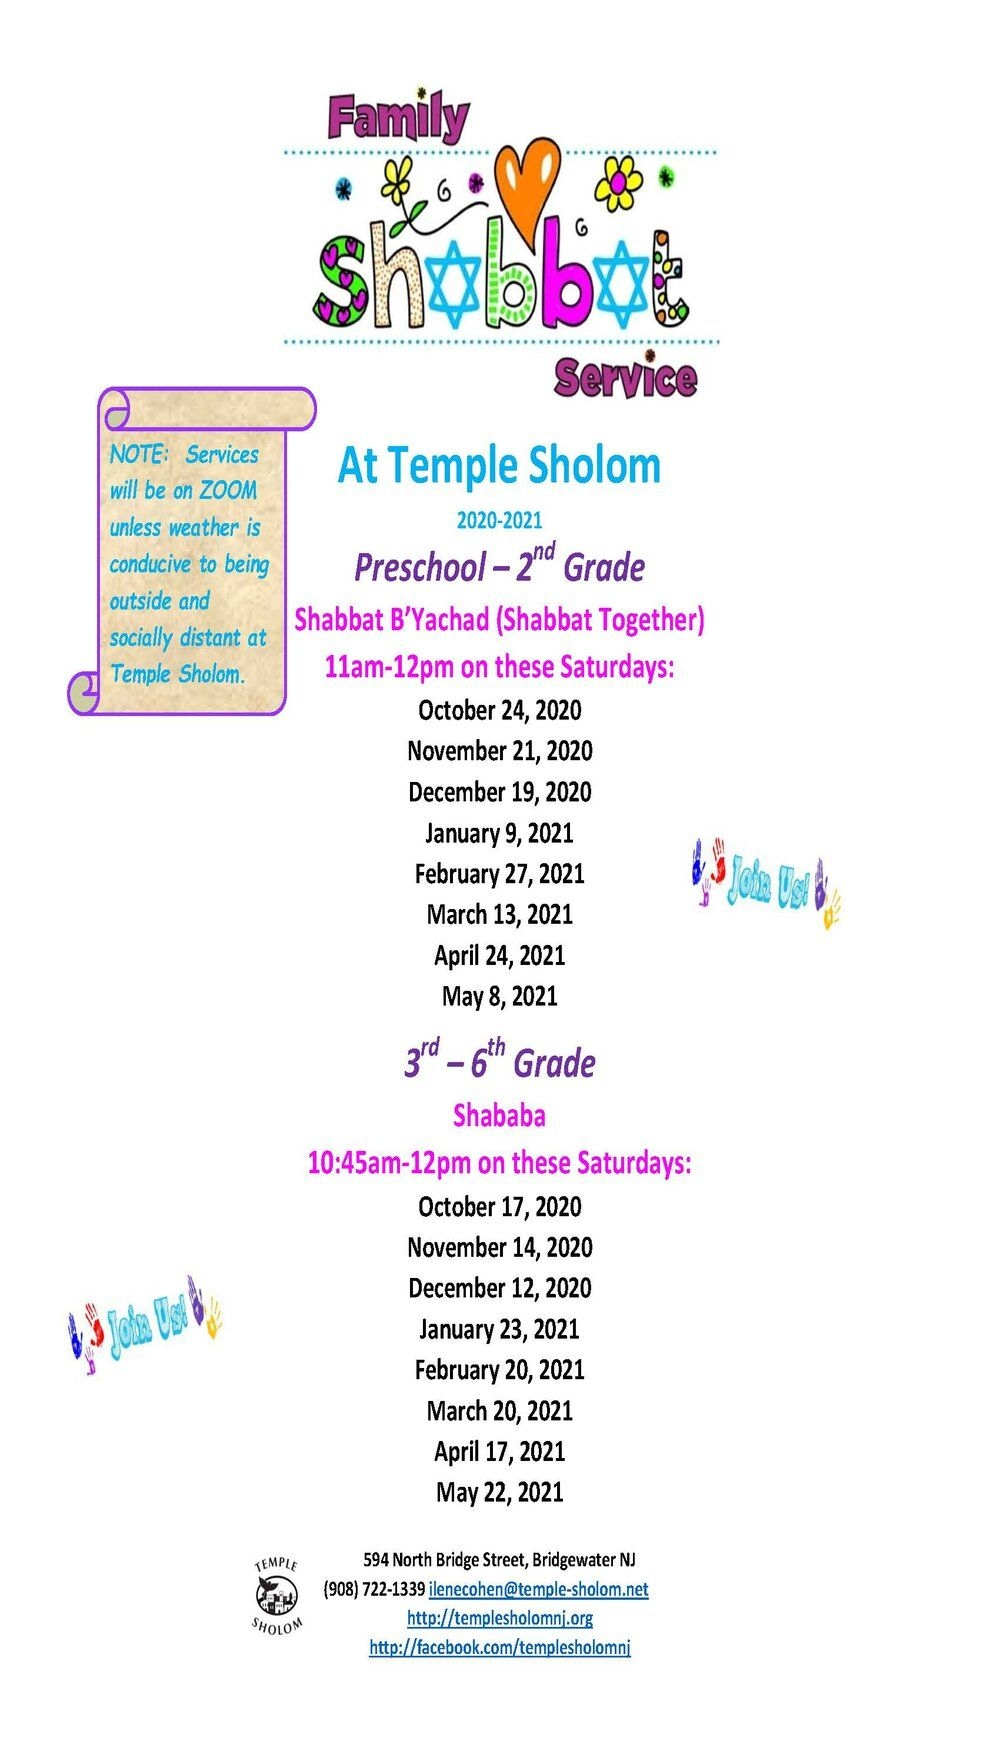 Upcoming Event Flyers — Temple Sholom